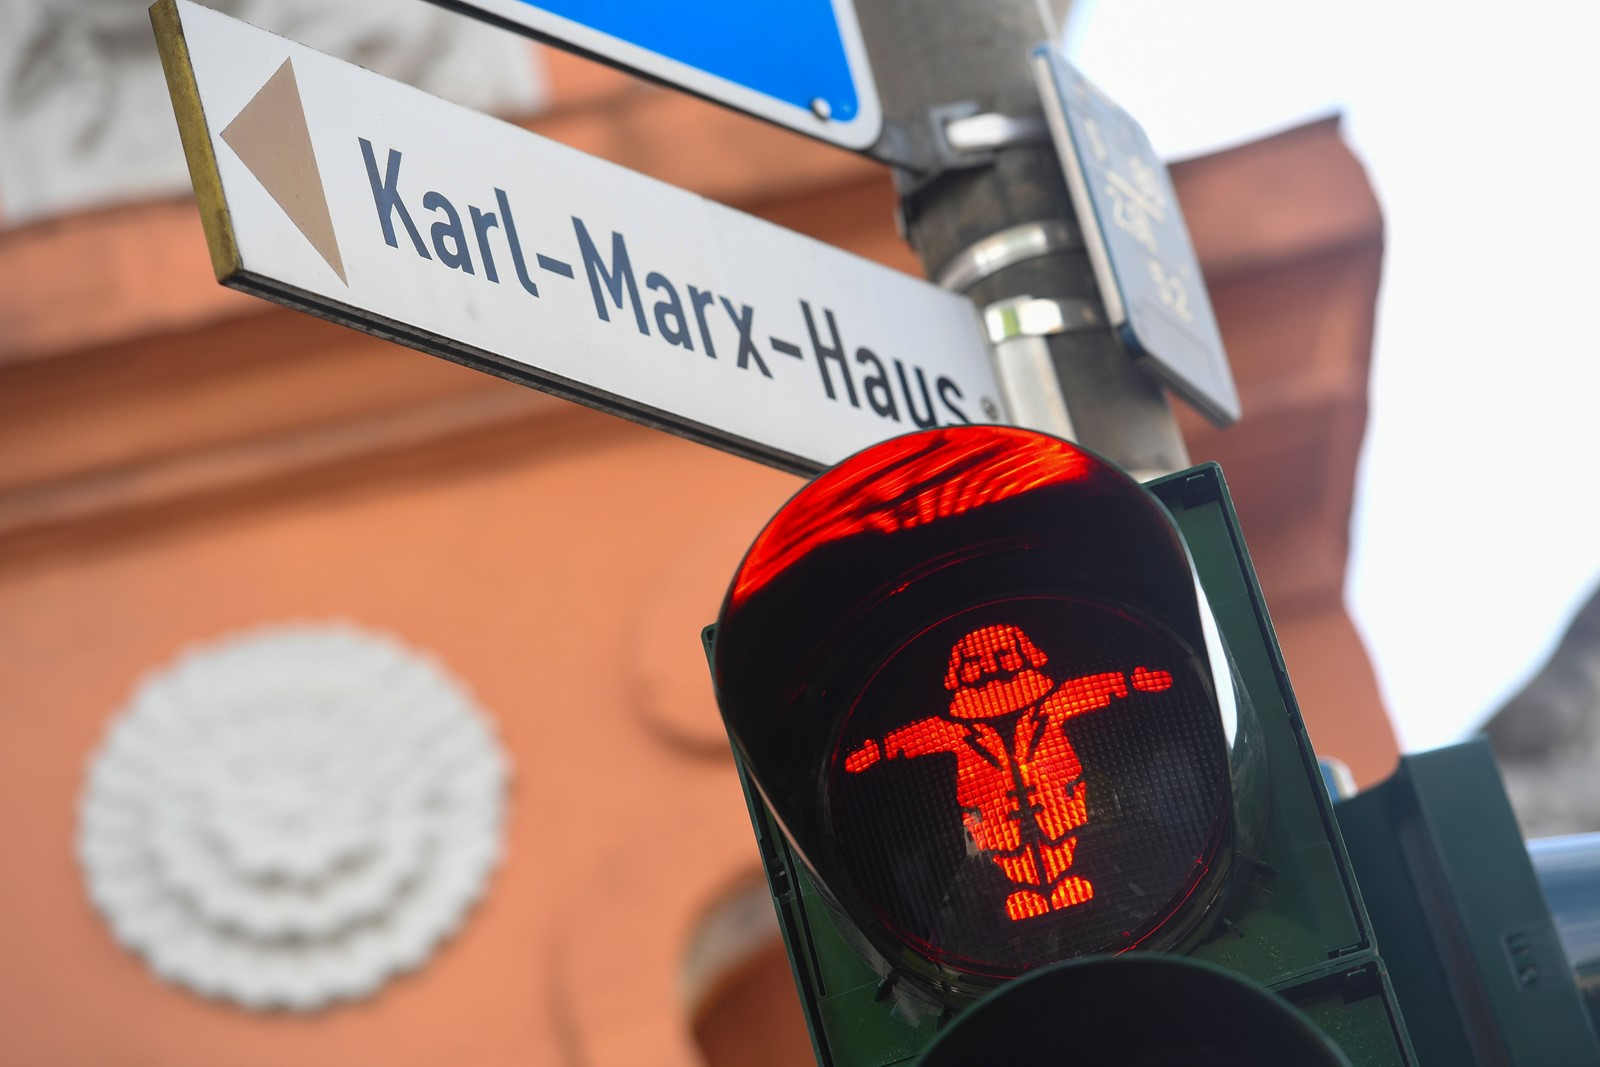 Marx-like green and red figures on traffic lights for pedestrian crossings are part of the Marx mania in Trier, the philosopher's west German hometown. — Photograph: Patrik Stollarz/Agence France-Presse/Getty Images.